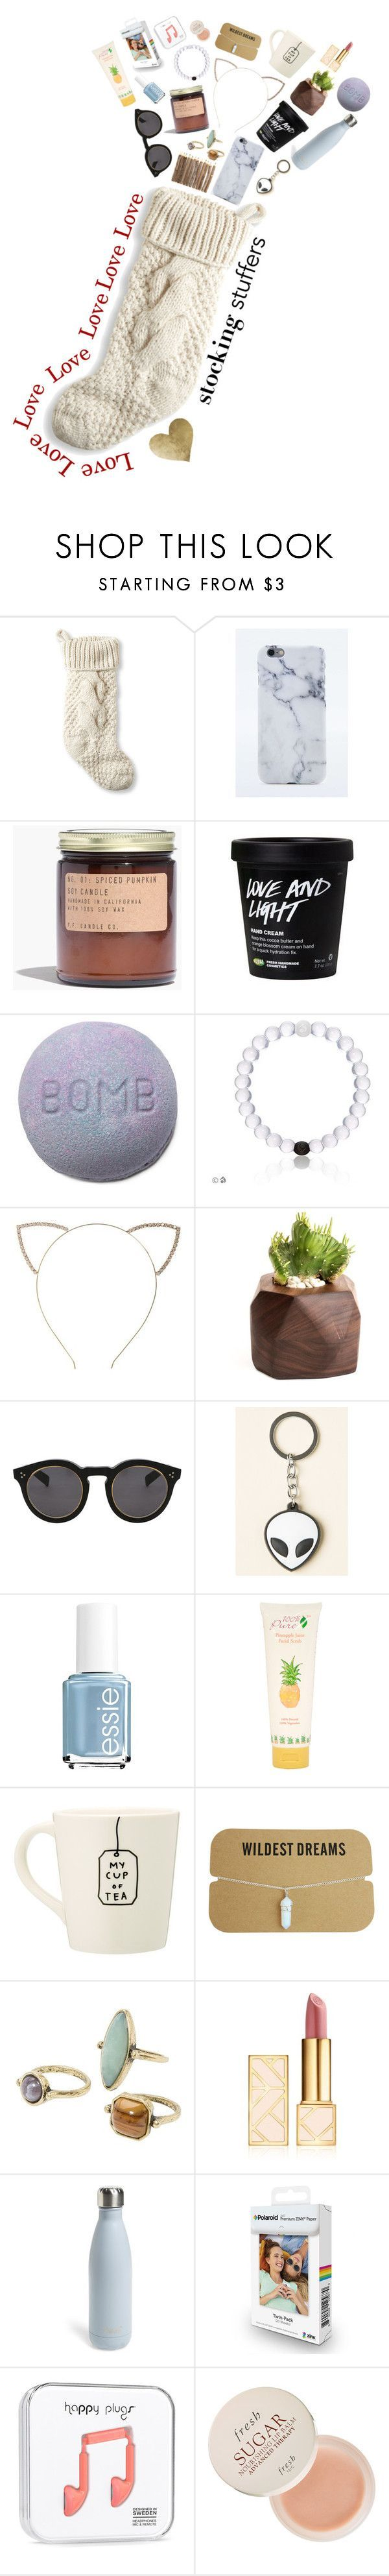 """Stocking Stuffers for Teens"" by onewithbirds ❤ liked on Polyvore featuring beauty, L.L.Bean, Madewell, Cara, Illesteva, Essie, 100% Pure, MANGO, Tory Burch and S'well #teenbirthdaygifts"